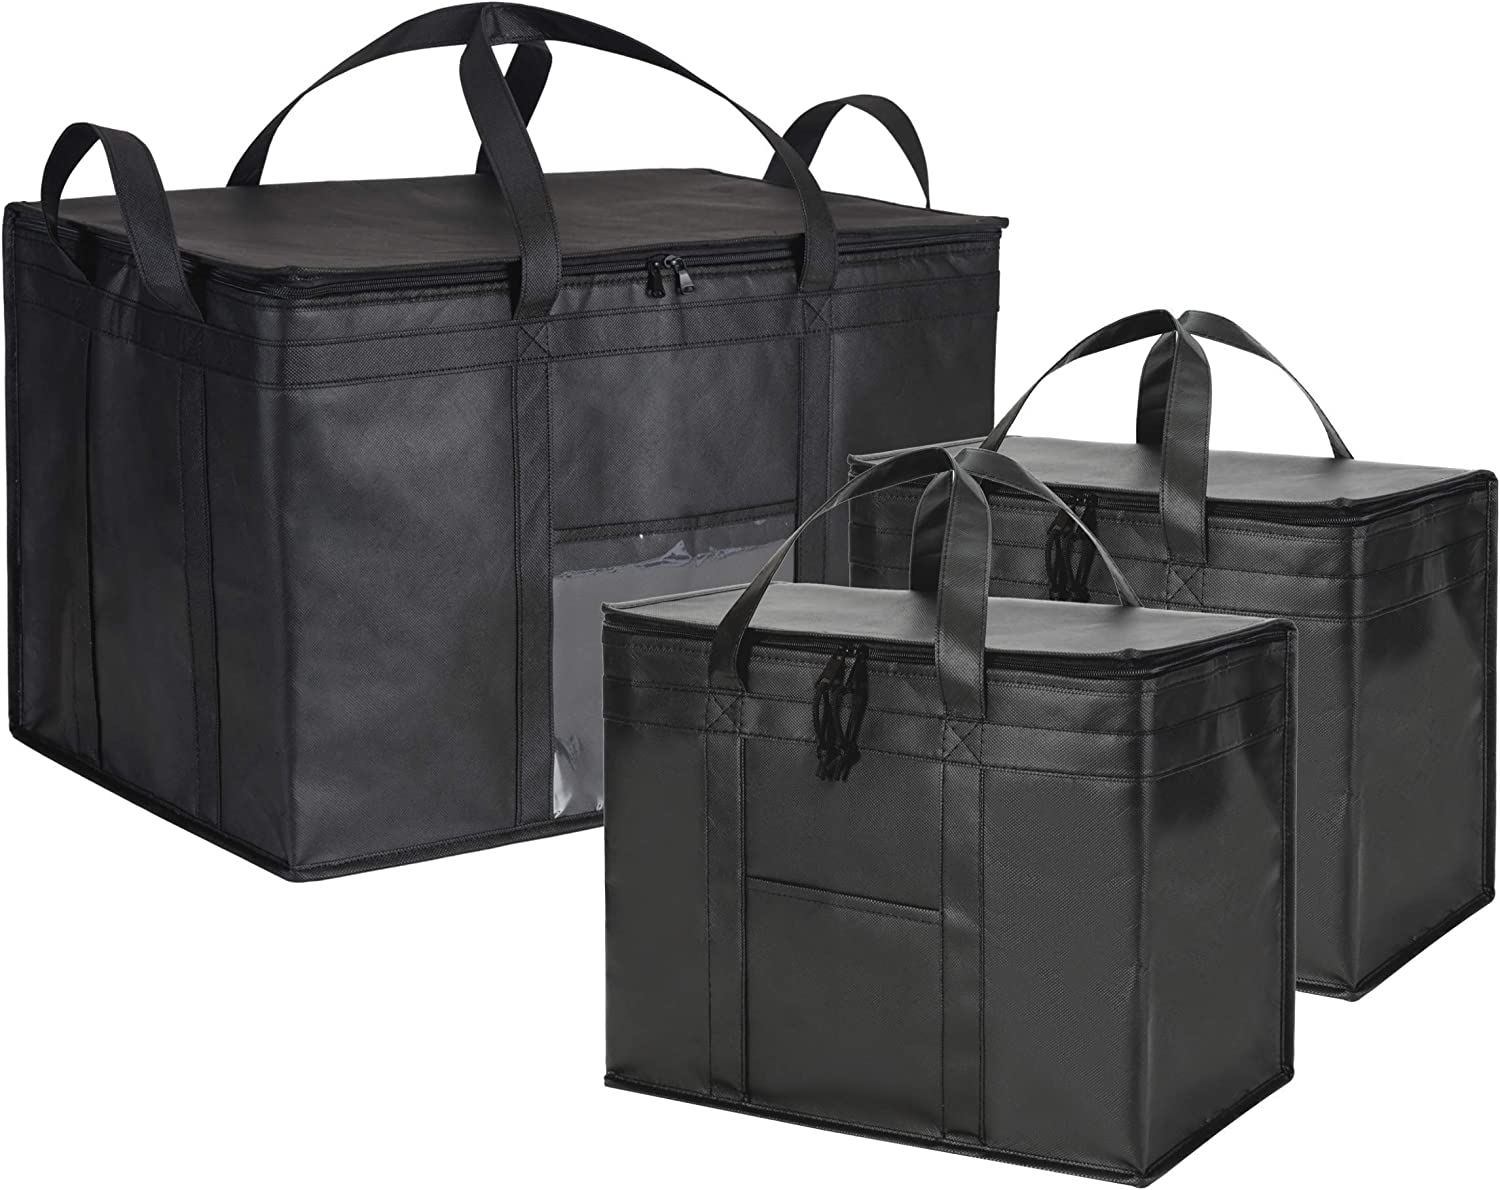 NZ Home Ultimate Food Delivery Bags Bundle XL Insulated Bags 2 Pack + XXXL Insulated Bags 1 Pack